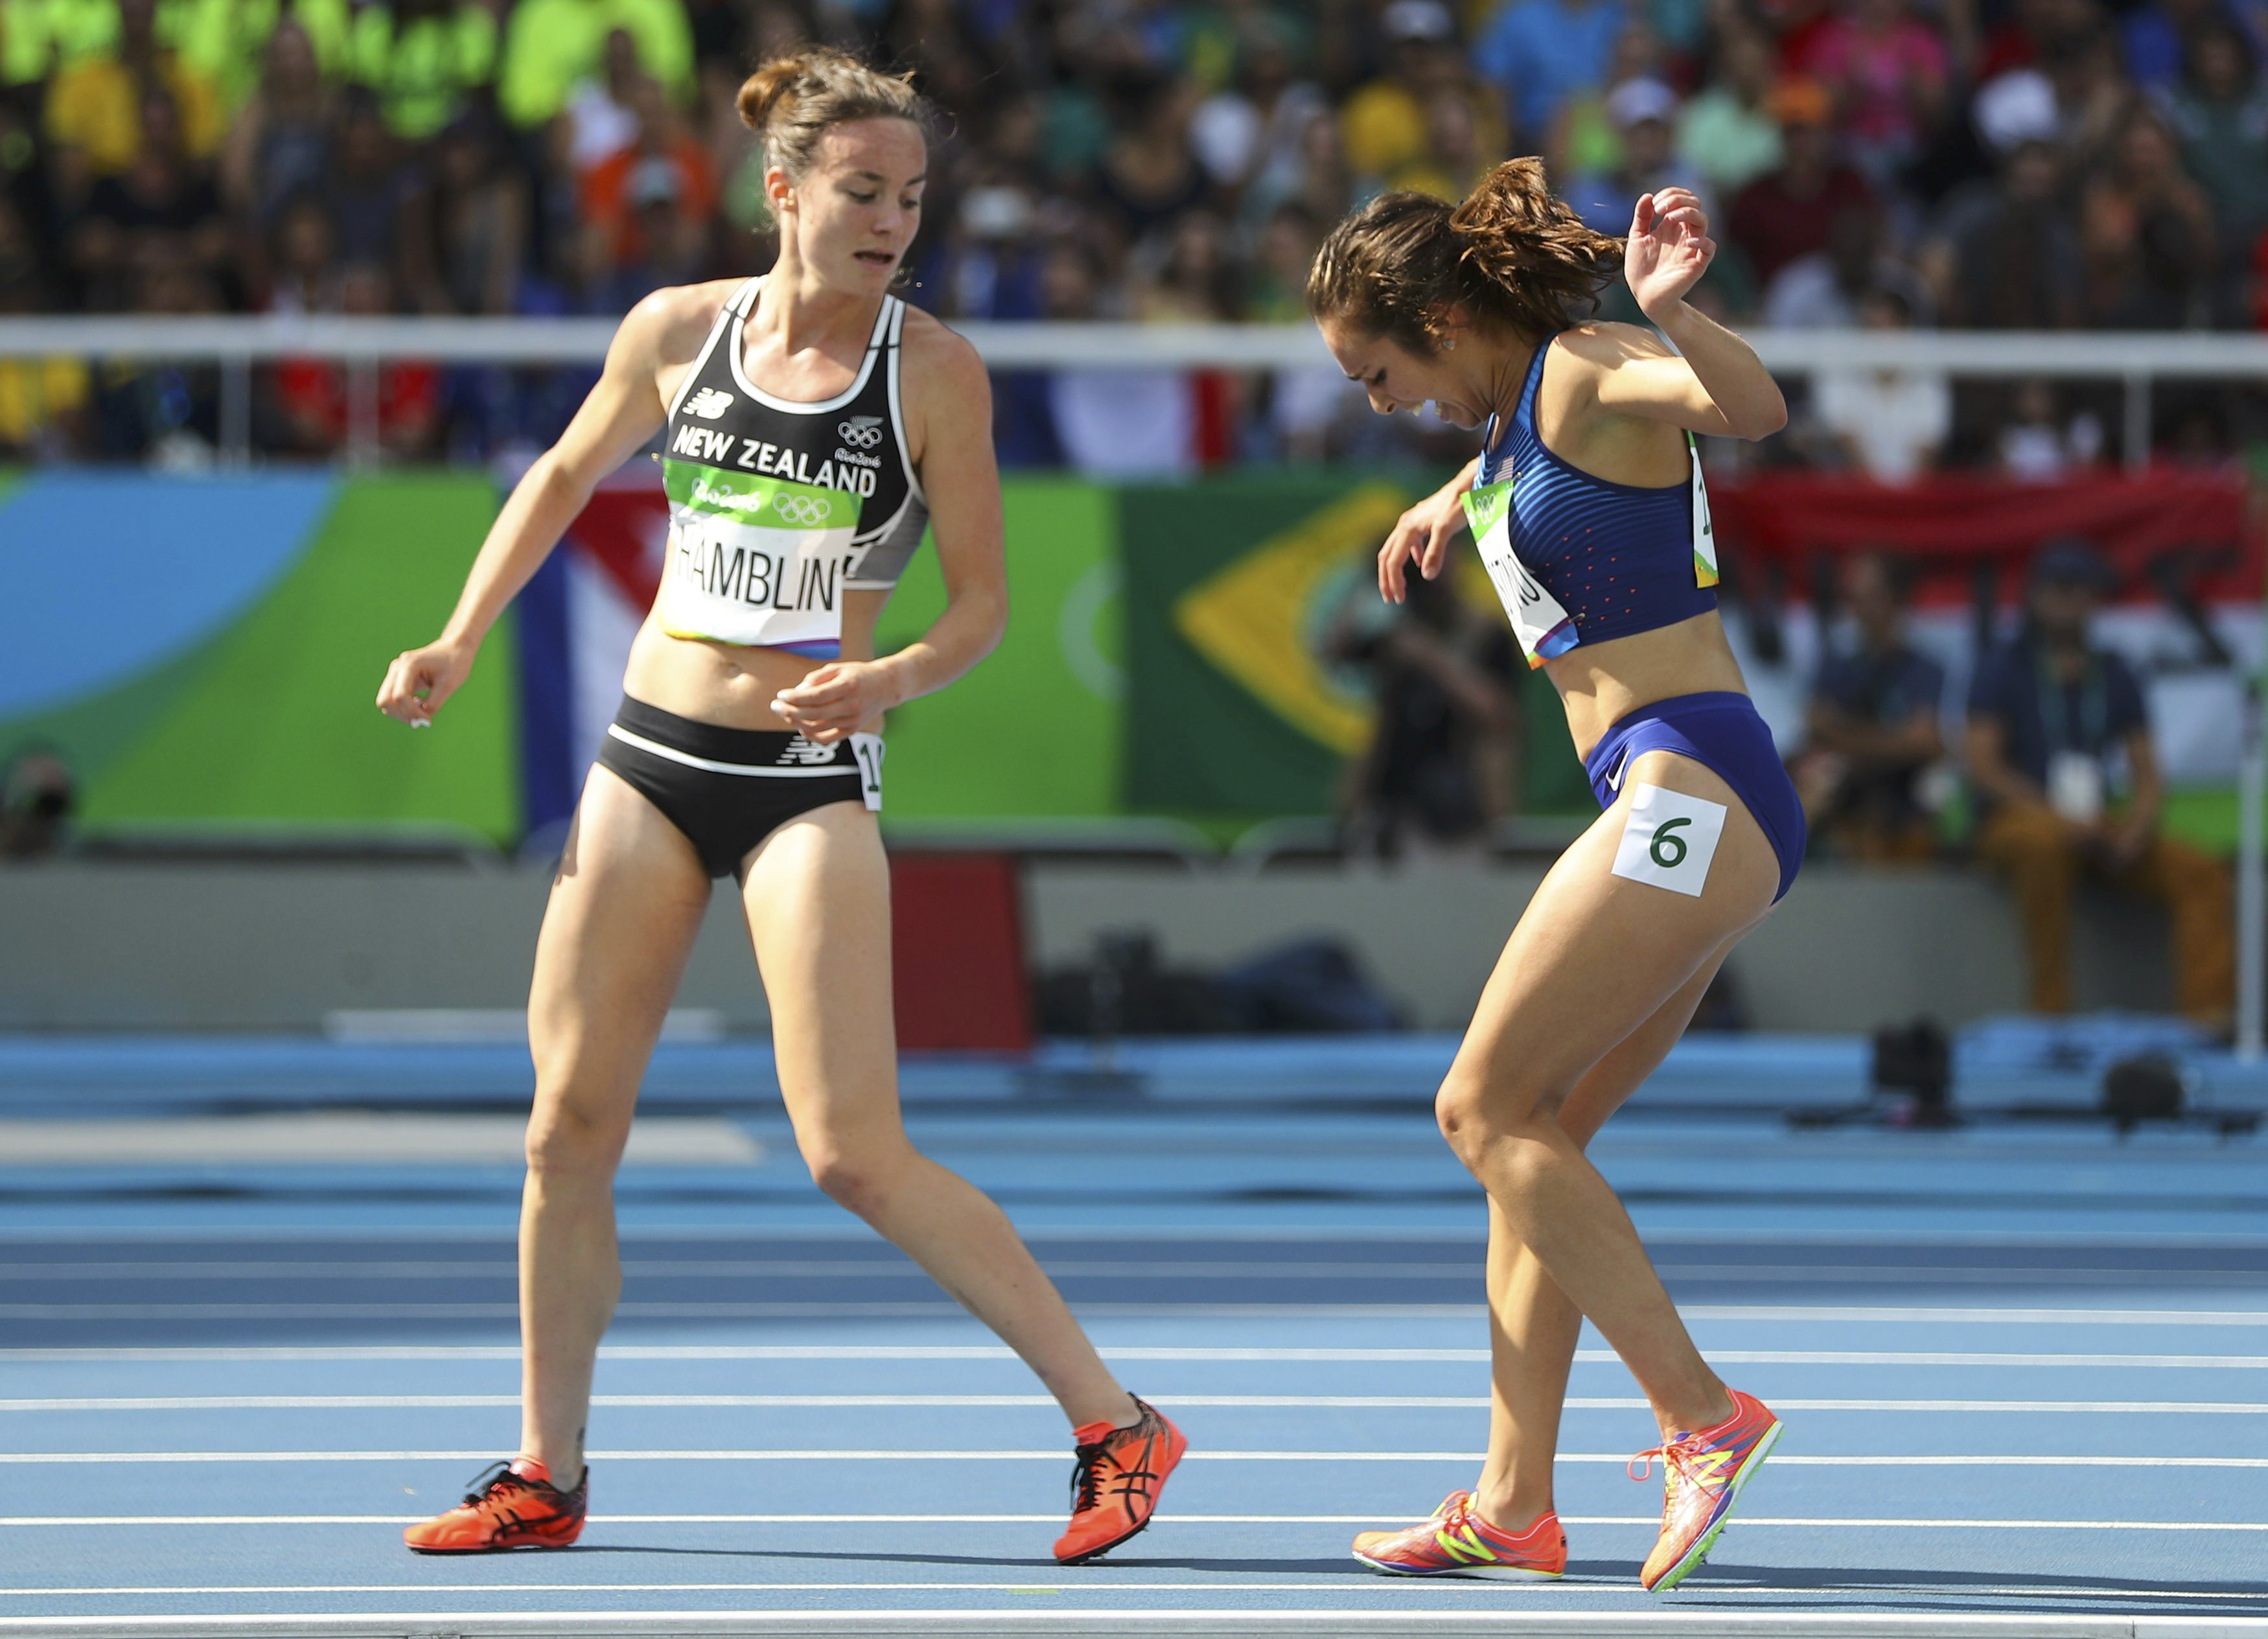 2016 Rio Olympics - Athletics - Preliminary - Women's 5000m Round 1 - Olympic Stadium - Rio de Janeiro, Brazil - 16/08/2016. Nikki Hamblin (NZL) of New Zealand stops running during the race to help fellow competitor Abbey D'Agostino (USA) of USA after D'Agostino suffered a cramp. REUTERS/Kai Pfaffenbach FOR EDITORIAL USE ONLY. NOT FOR SALE FOR MARKETING OR ADVERTISING CAMPAIGNS. - RTX2L6XP